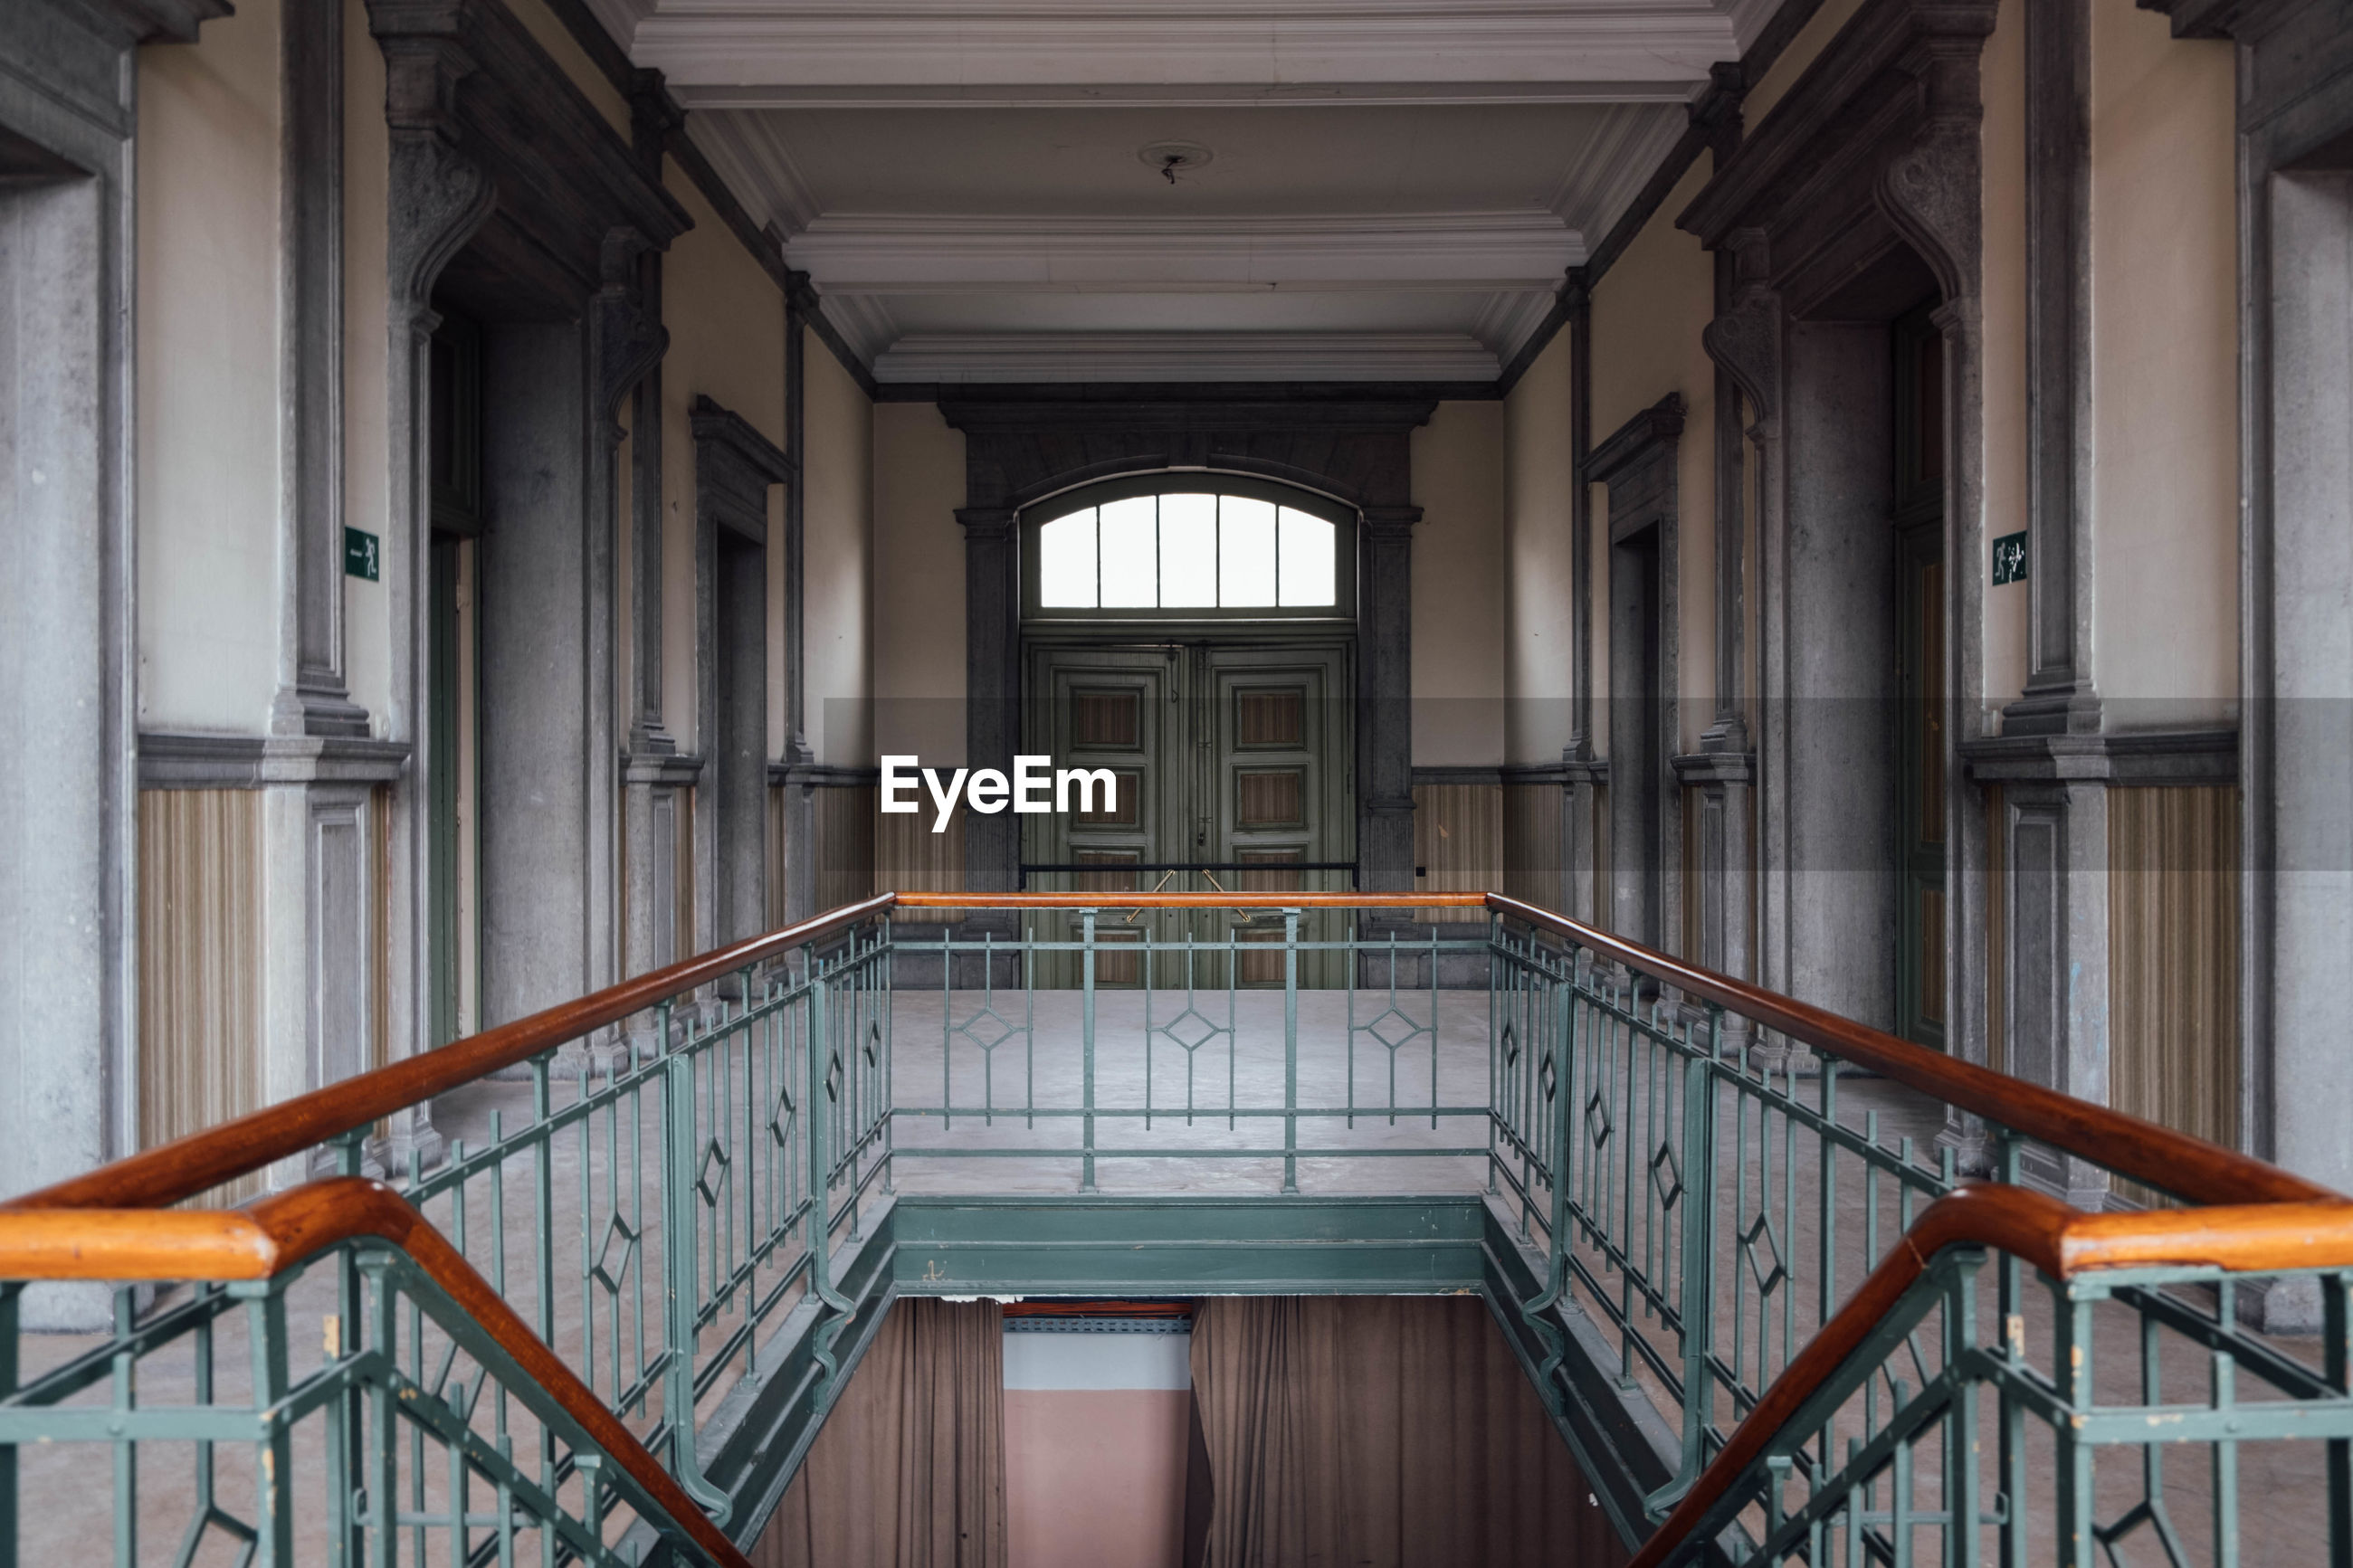 architecture, railing, staircase, indoors, built structure, day, no people, steps and staircases, building, window, absence, entrance, door, empty, metal, architectural column, the way forward, arcade, wood - material, ceiling